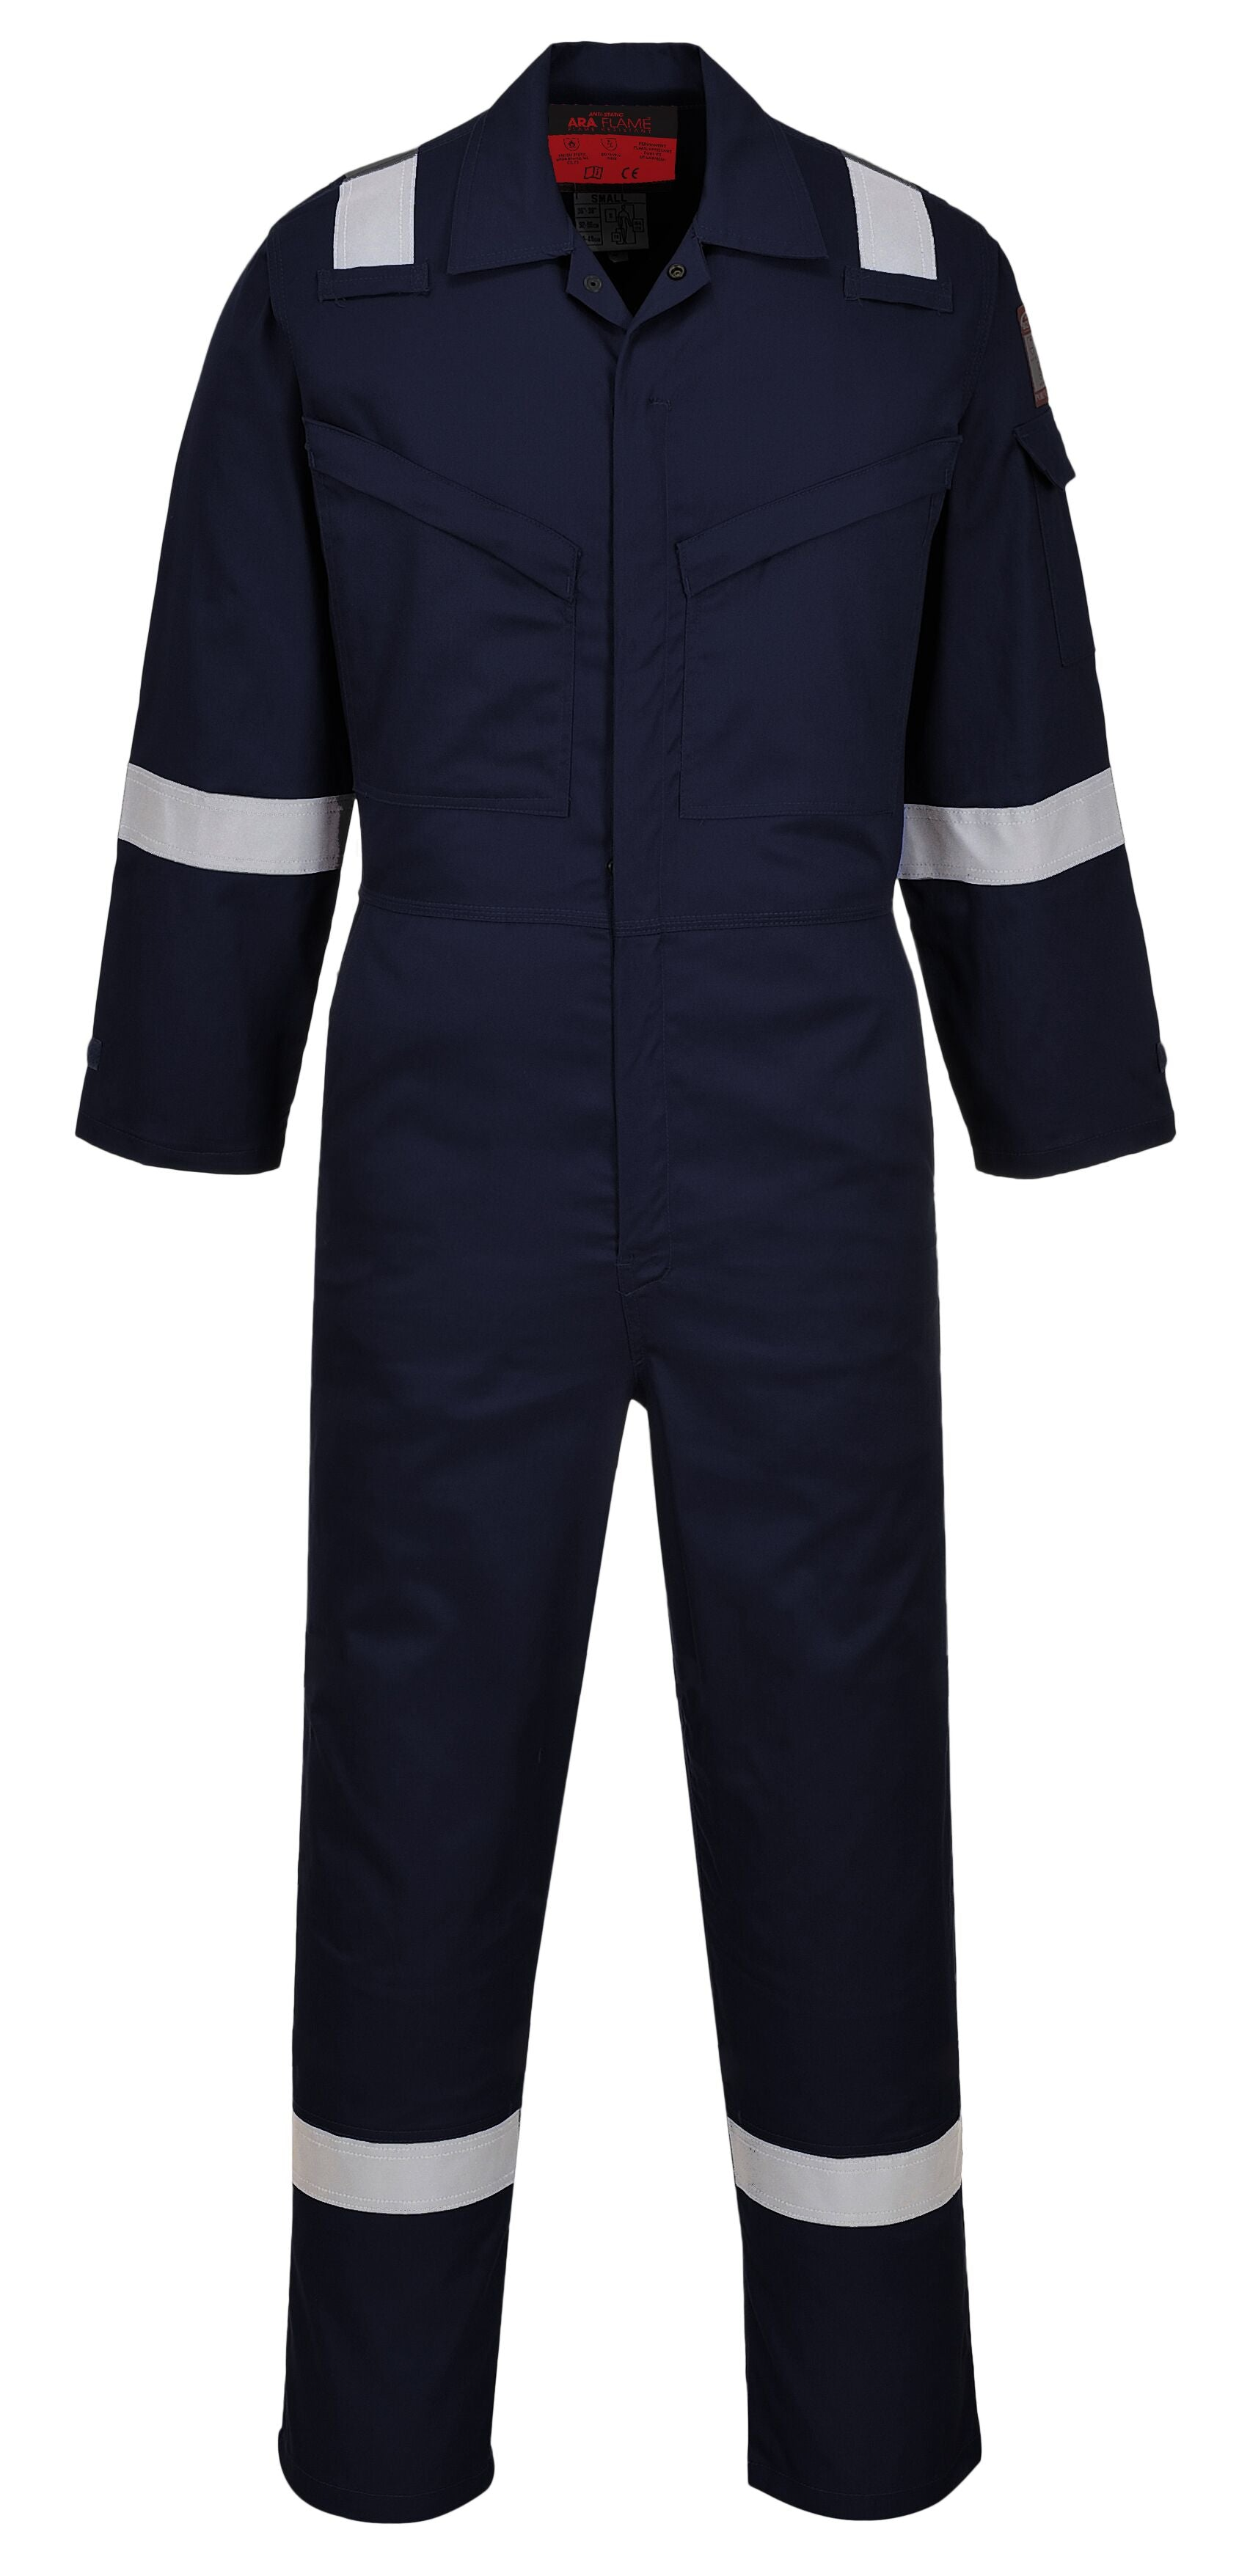 Araflame NFPA 2112 FR Coverall